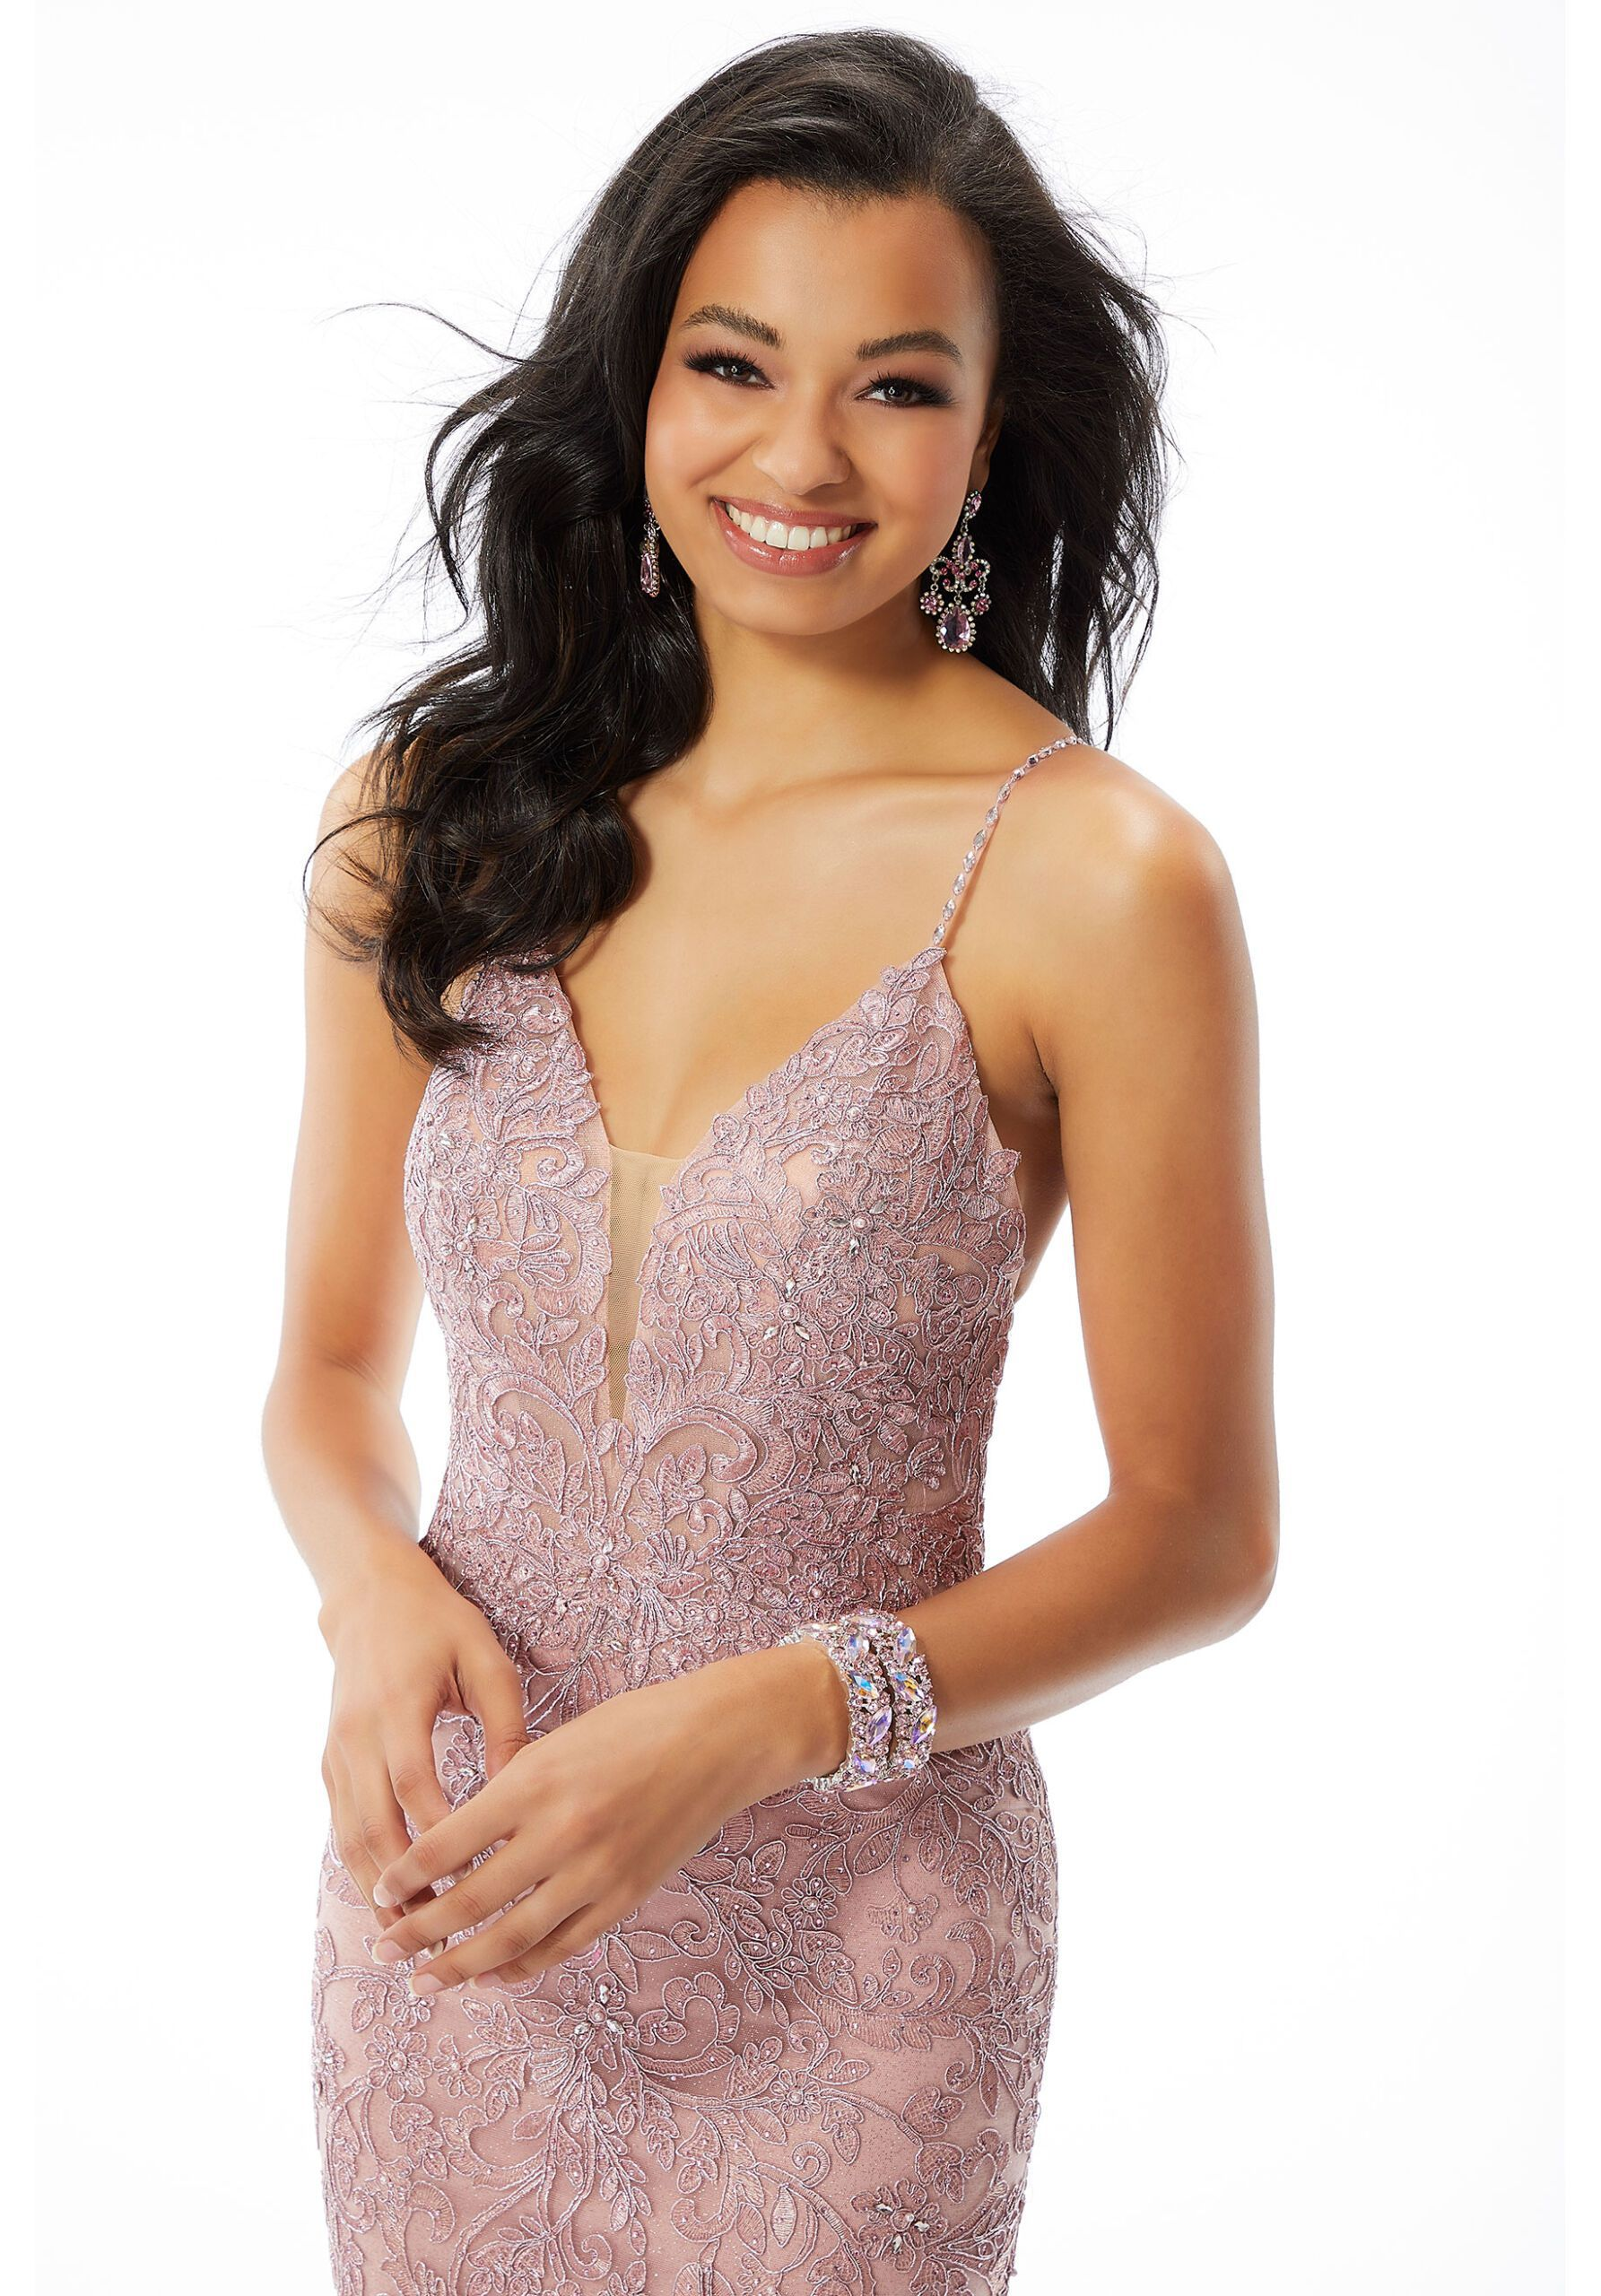 Style 45022 Mori Lee Pink Size 8 Prom Pageant Tall Height Mermaid Dress on Queenly